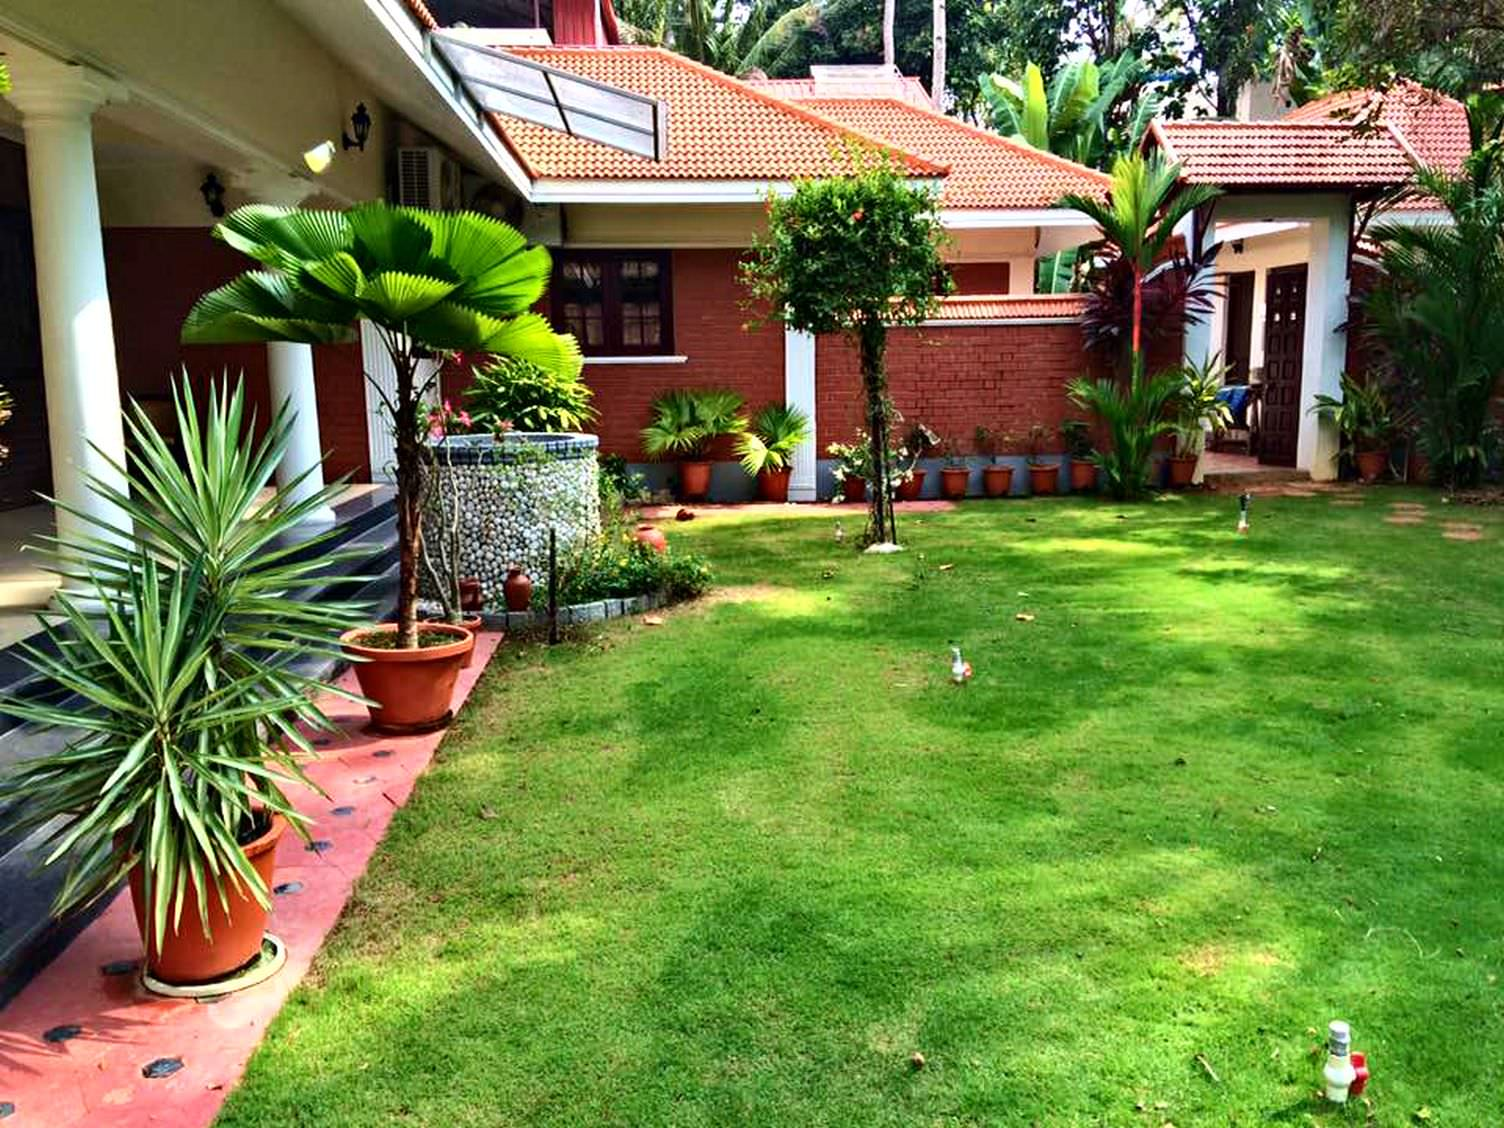 Kerala style landscape design photos kerala home design and floor plans - Backyard landscape designs ...